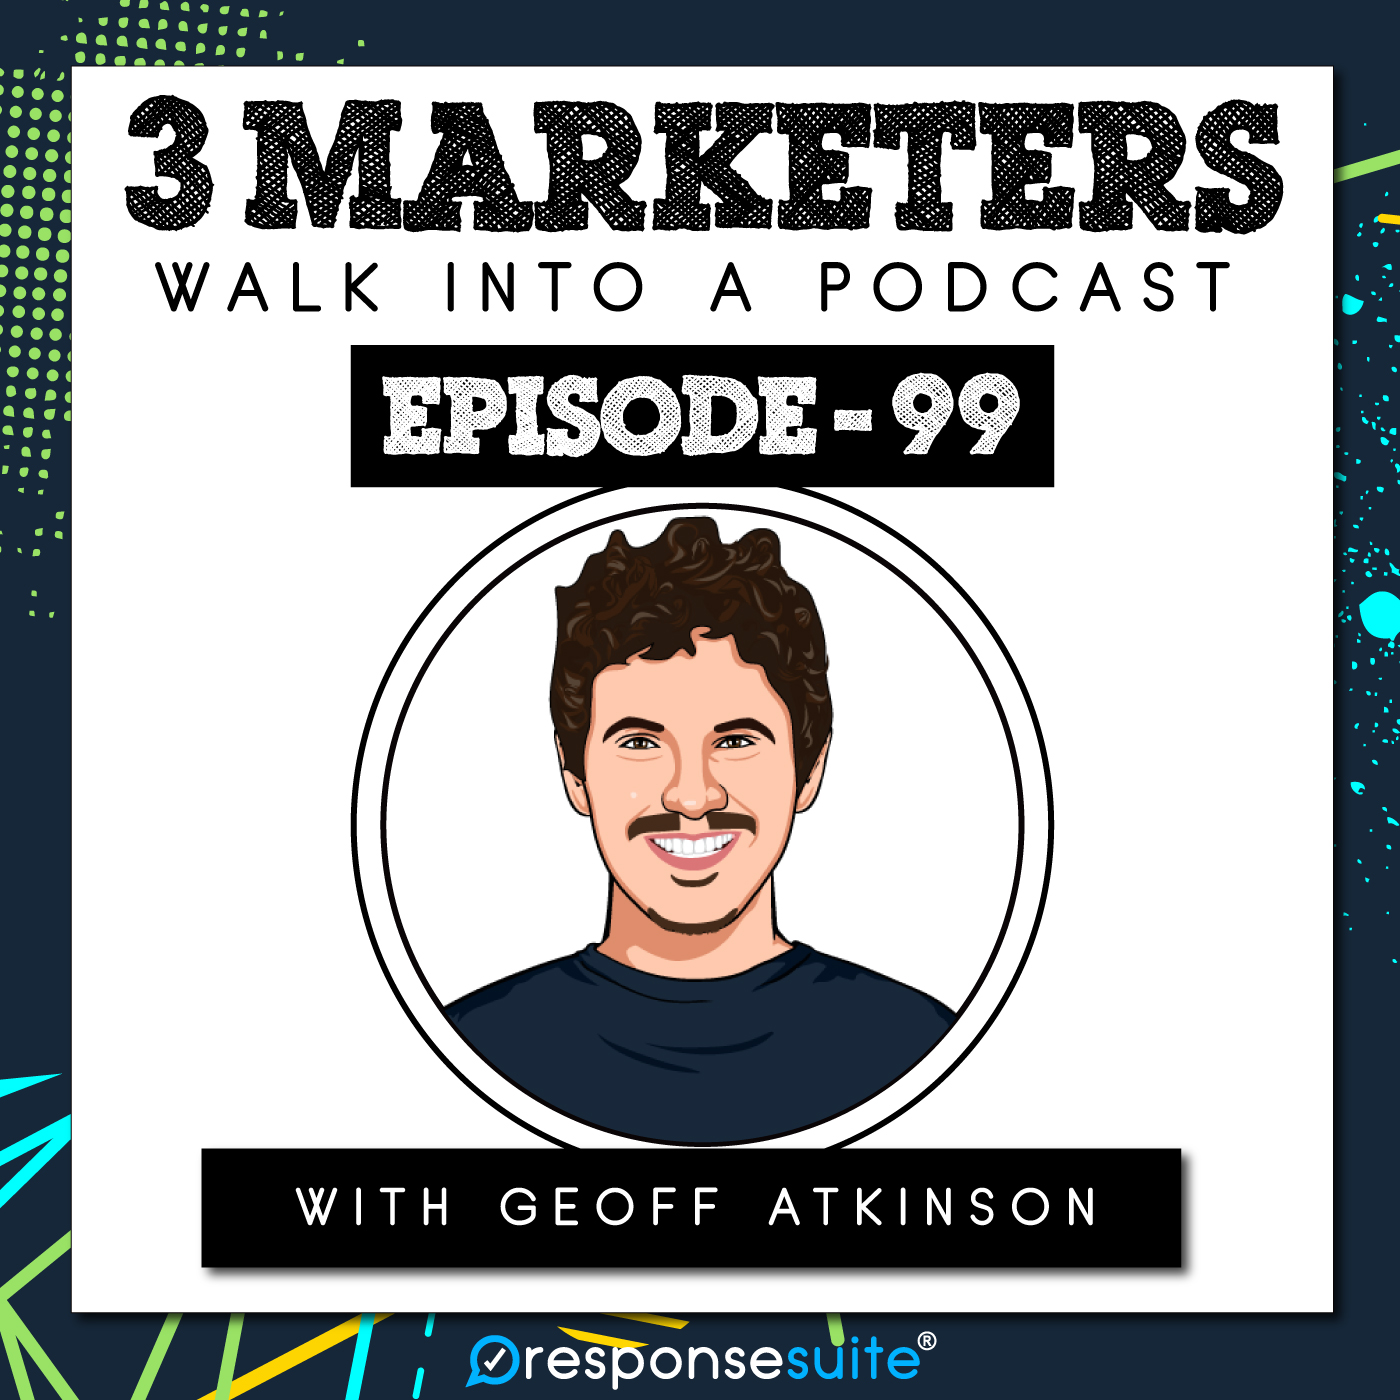 099: A Quick And Powerful Way To Get To The Top Of Google [Geoff Atkinson]